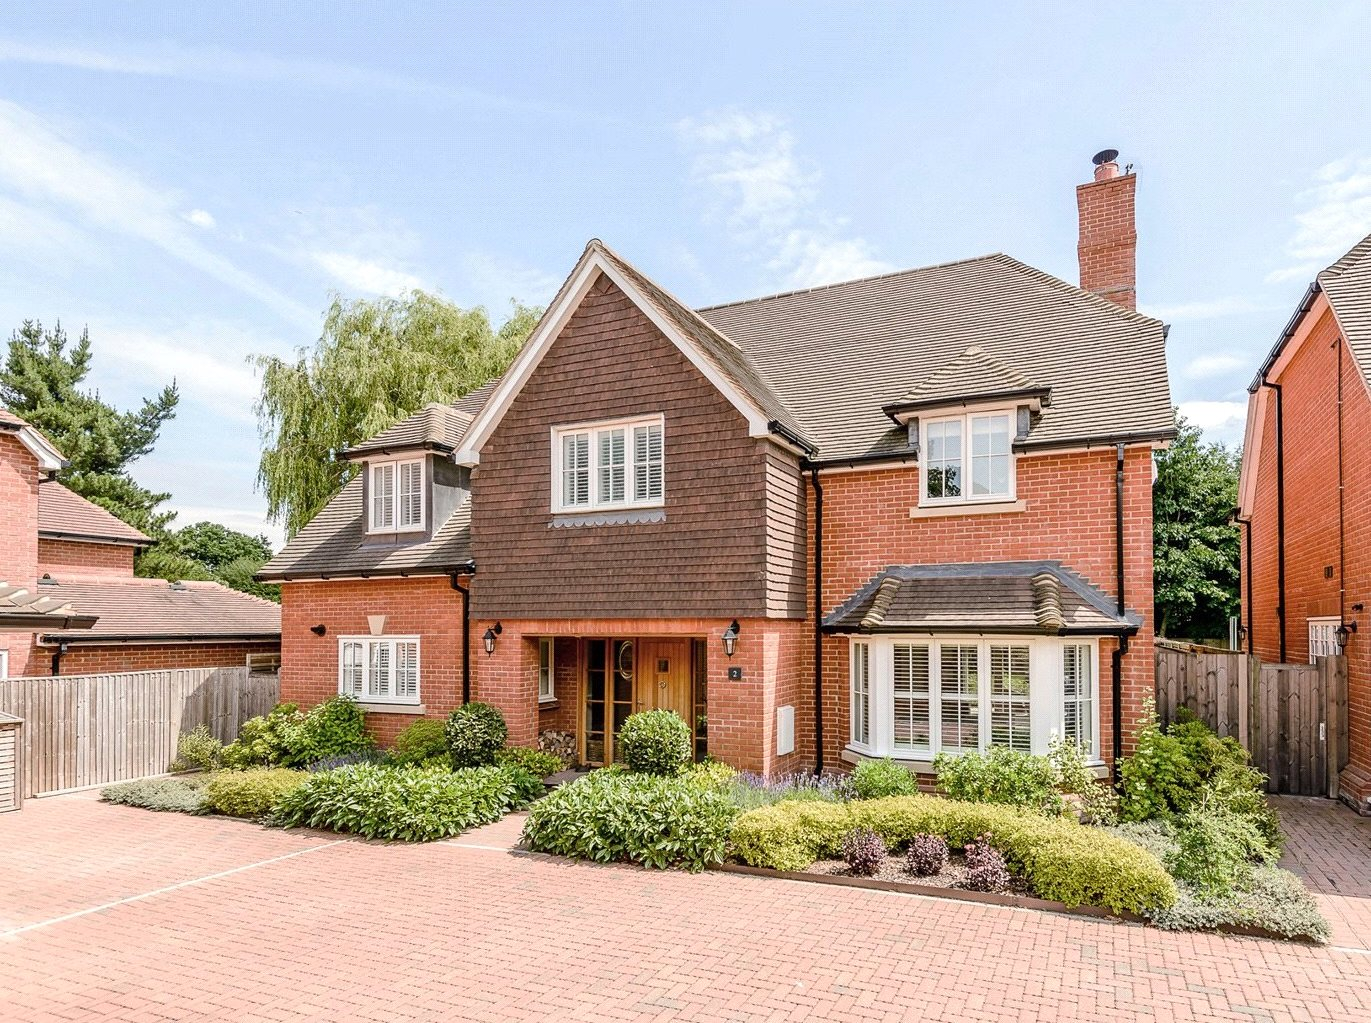 Single Family Home for Sale at Alderson Court, Ascot, Berkshire, SL5 Ascot, England